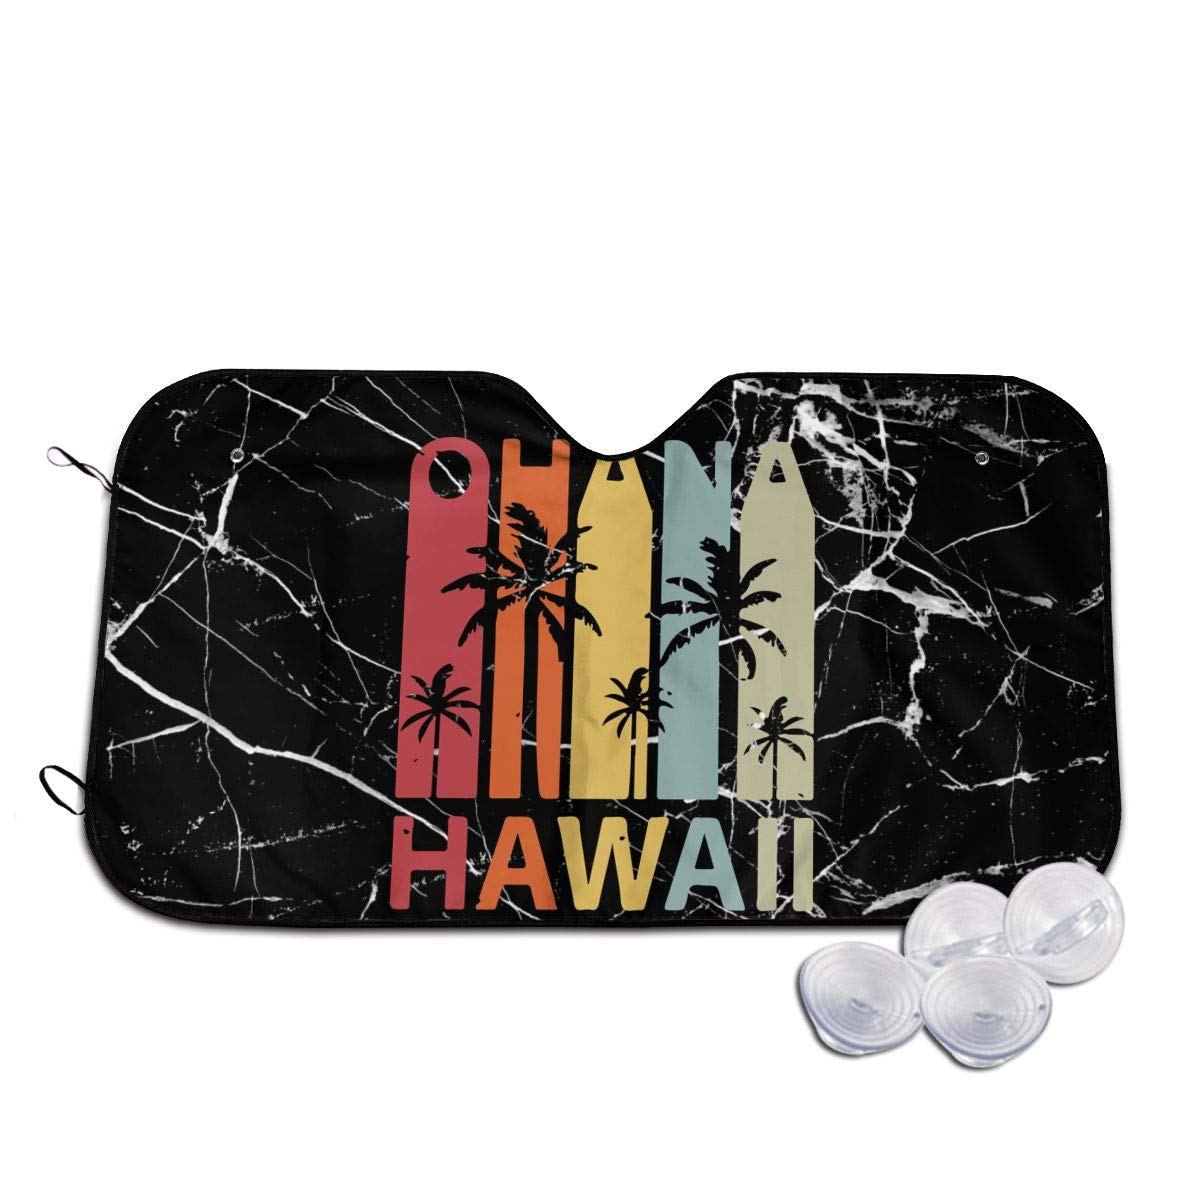 BAG9S-G1 Ohana Hawaiian Retro Windshield Sunshade for Car Foldable Sunshade for Car SUV Trucks Minivans Sunshades Keeps Vehicle Cool